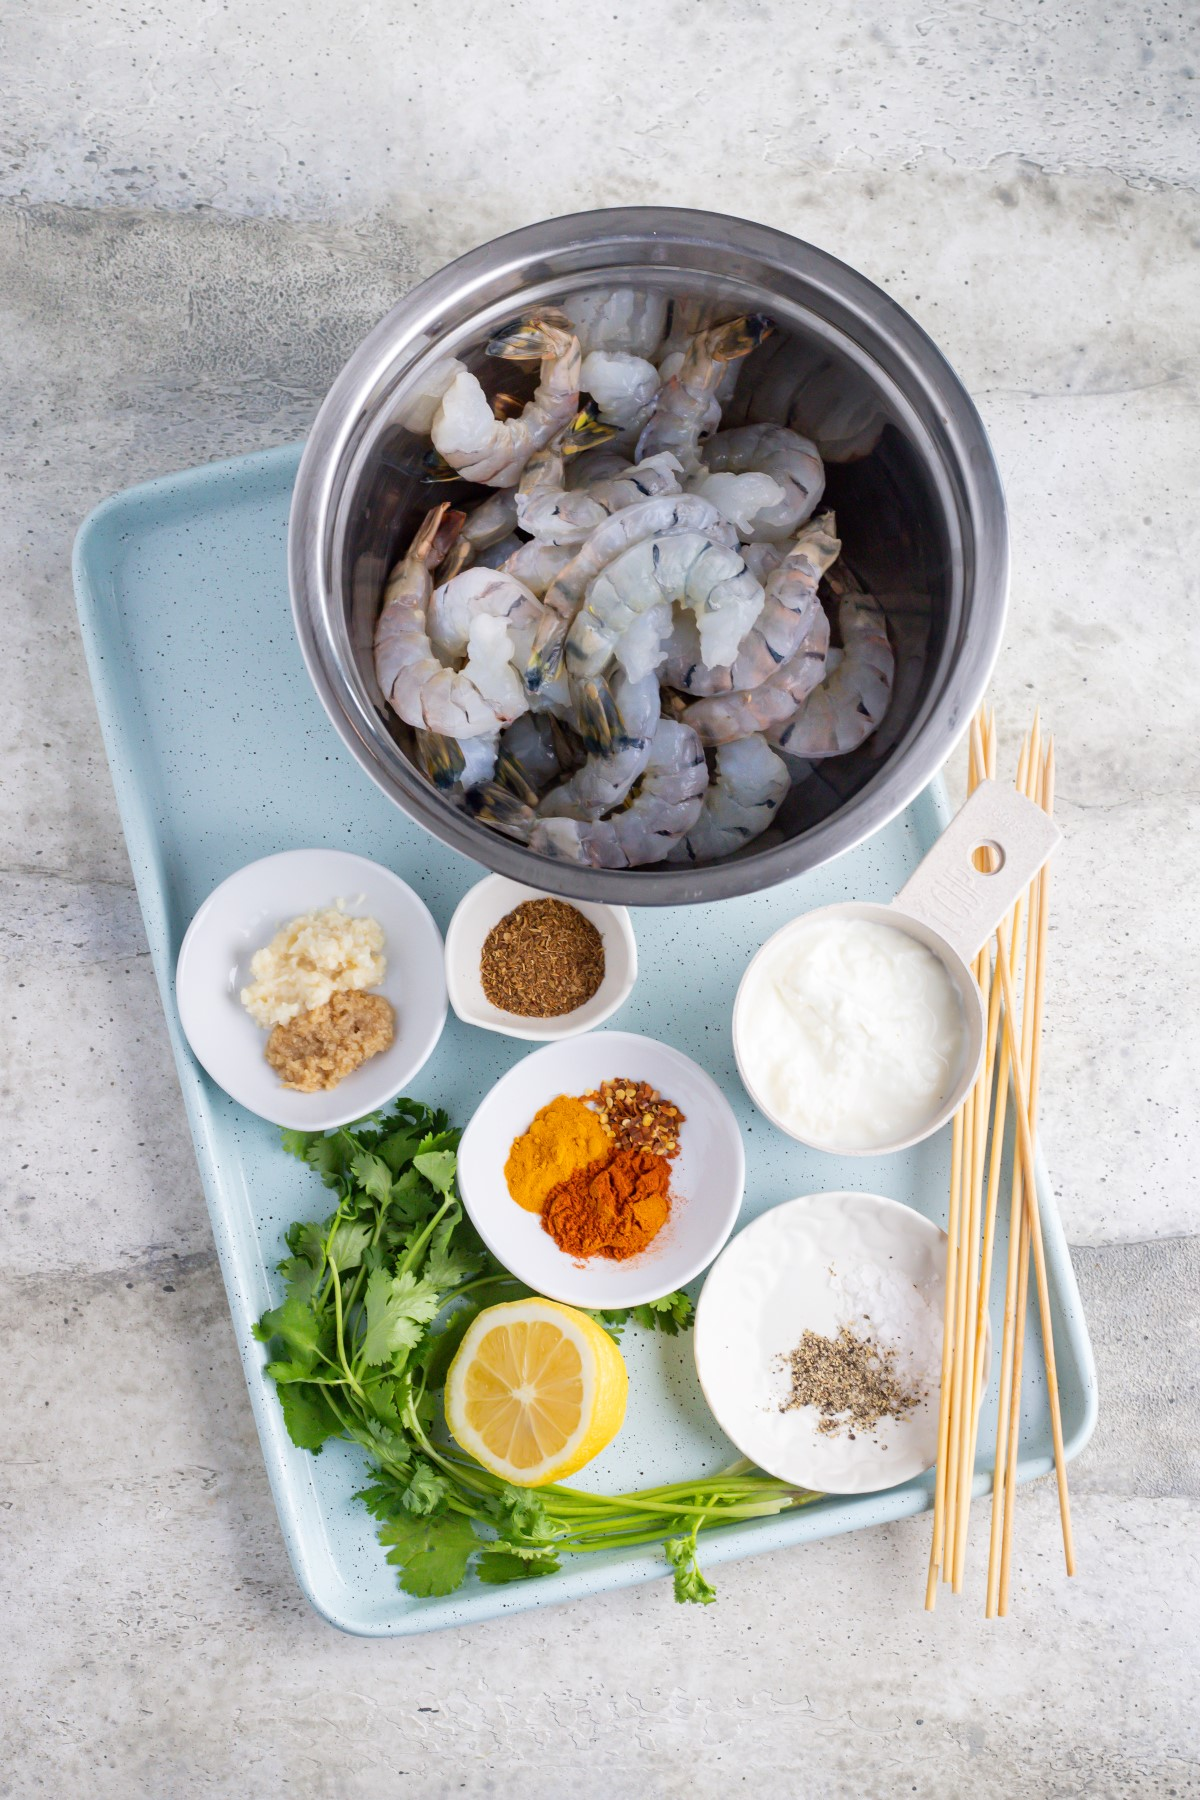 All the ingredients for the tandoori shrimp skewers in small bowls on a light blue tray, with bamboo skewers beside the bowls.